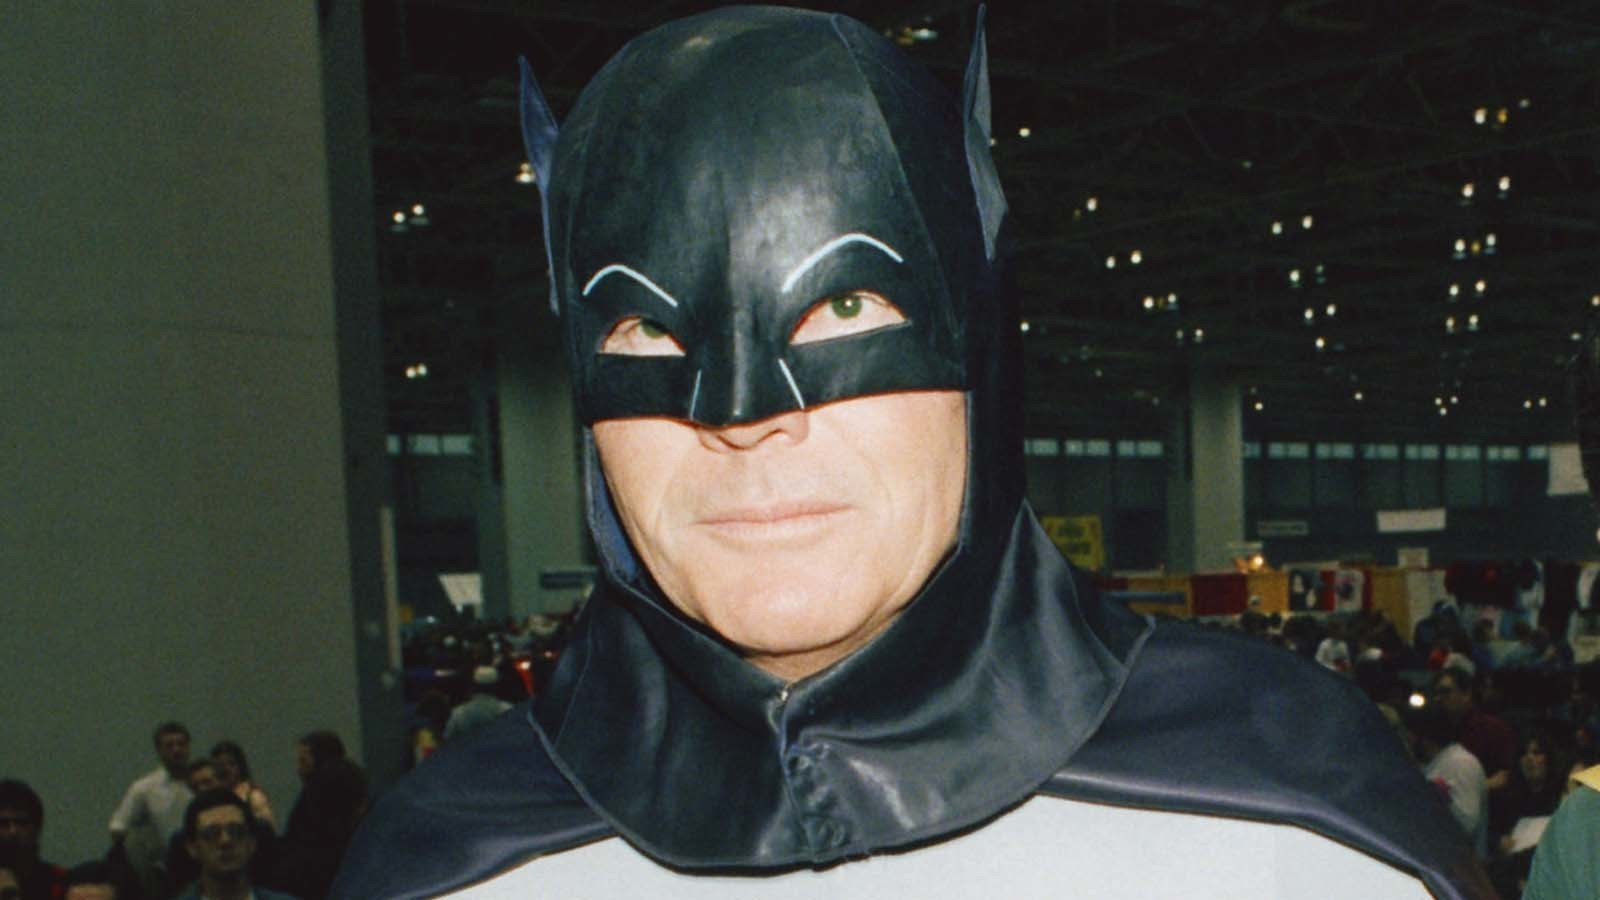 Bat-Signal City Hall: LA Lights Up Night to Honor Adam West